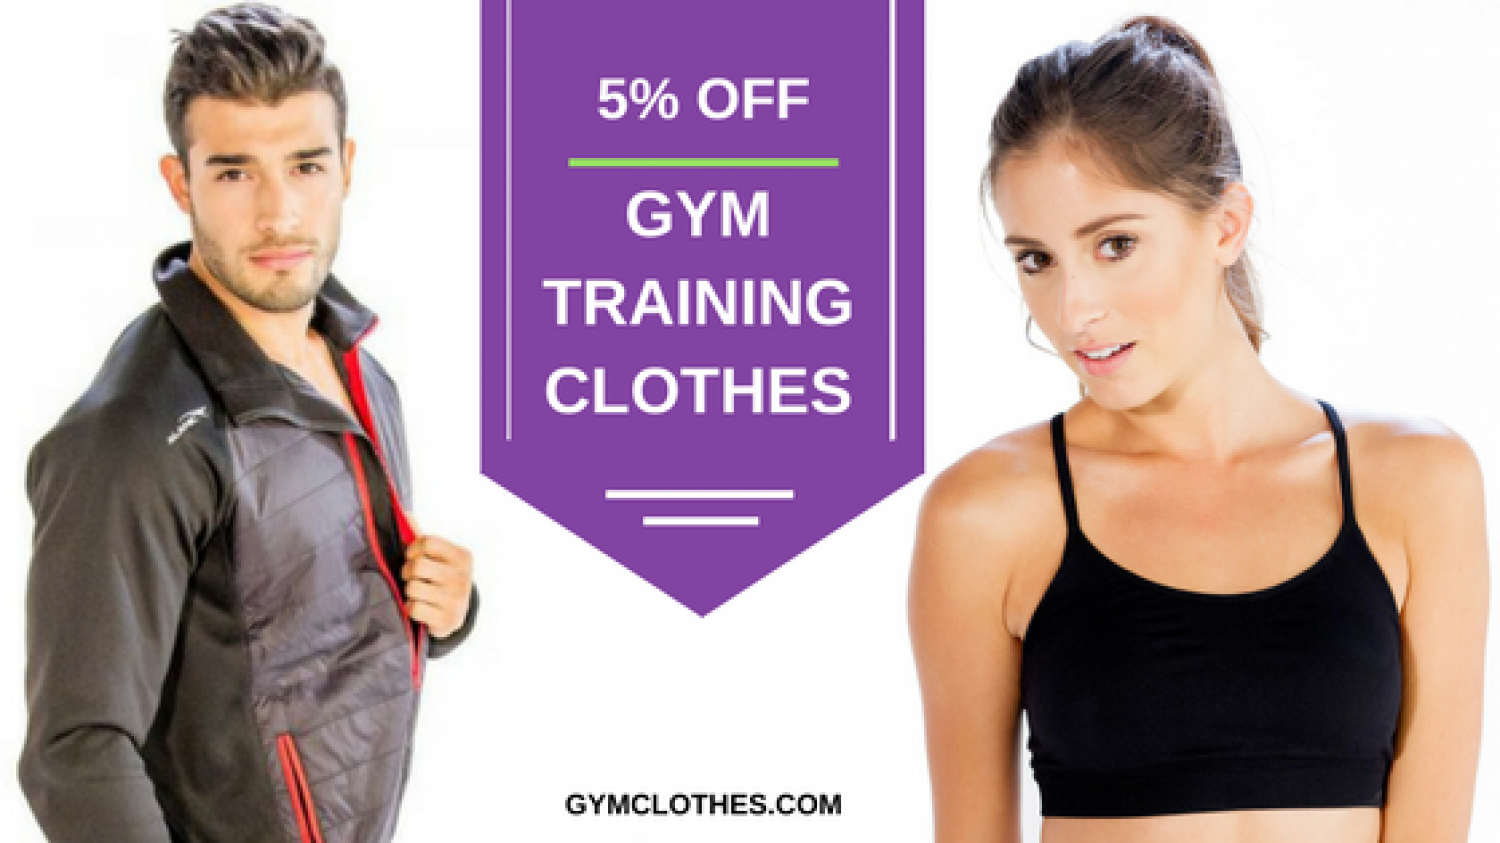 Gym Training Clothes - Get Best Gym Workout Clothes From Gym Clothes Store Infographic